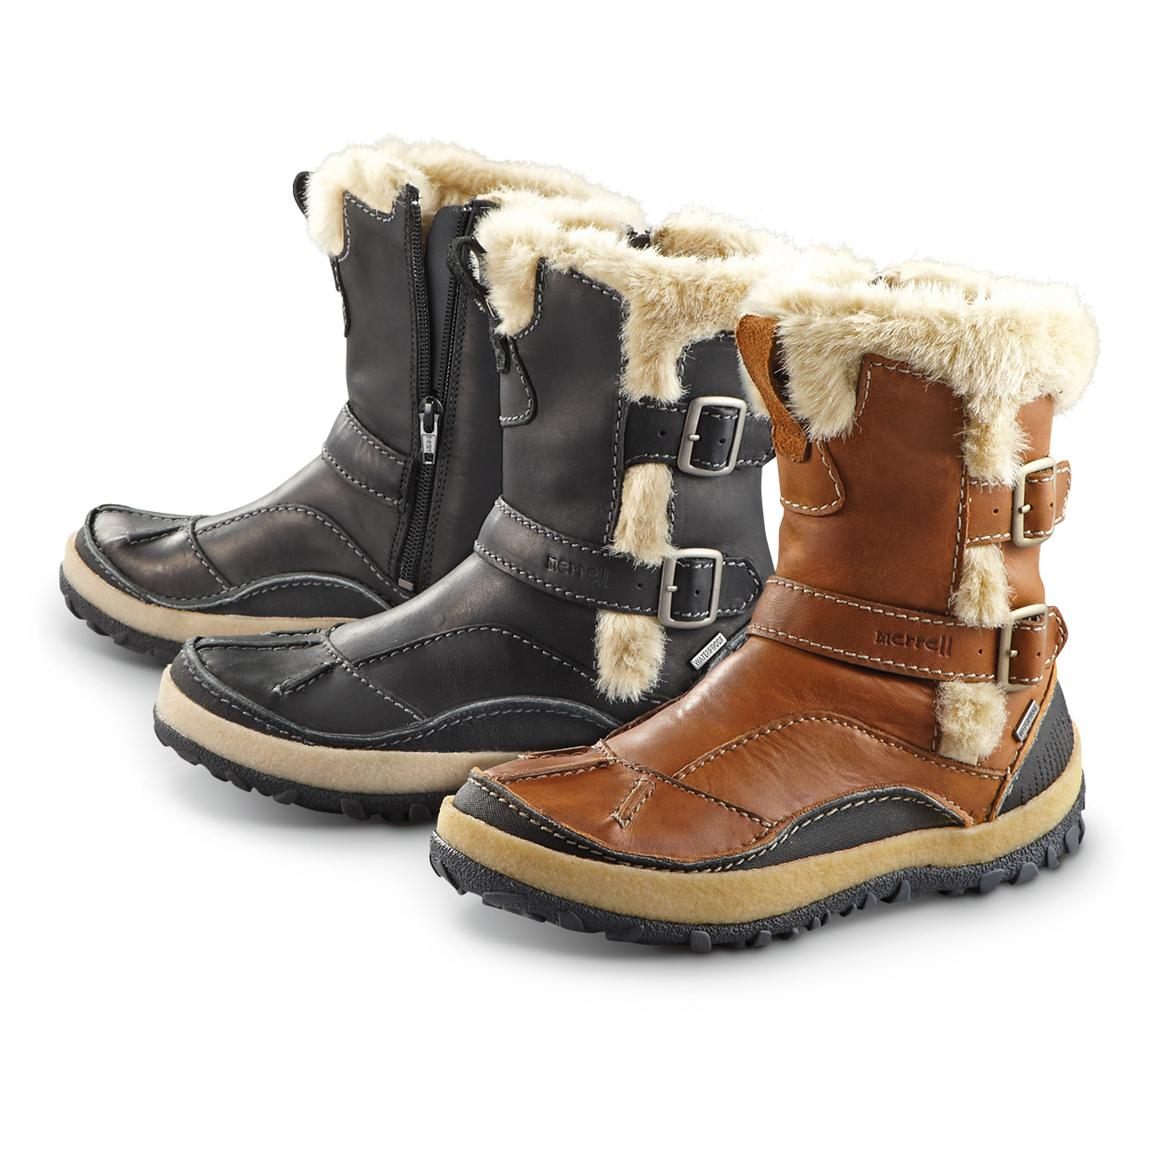 Cute Womens Snow Boots Waterproof Kf878Ist